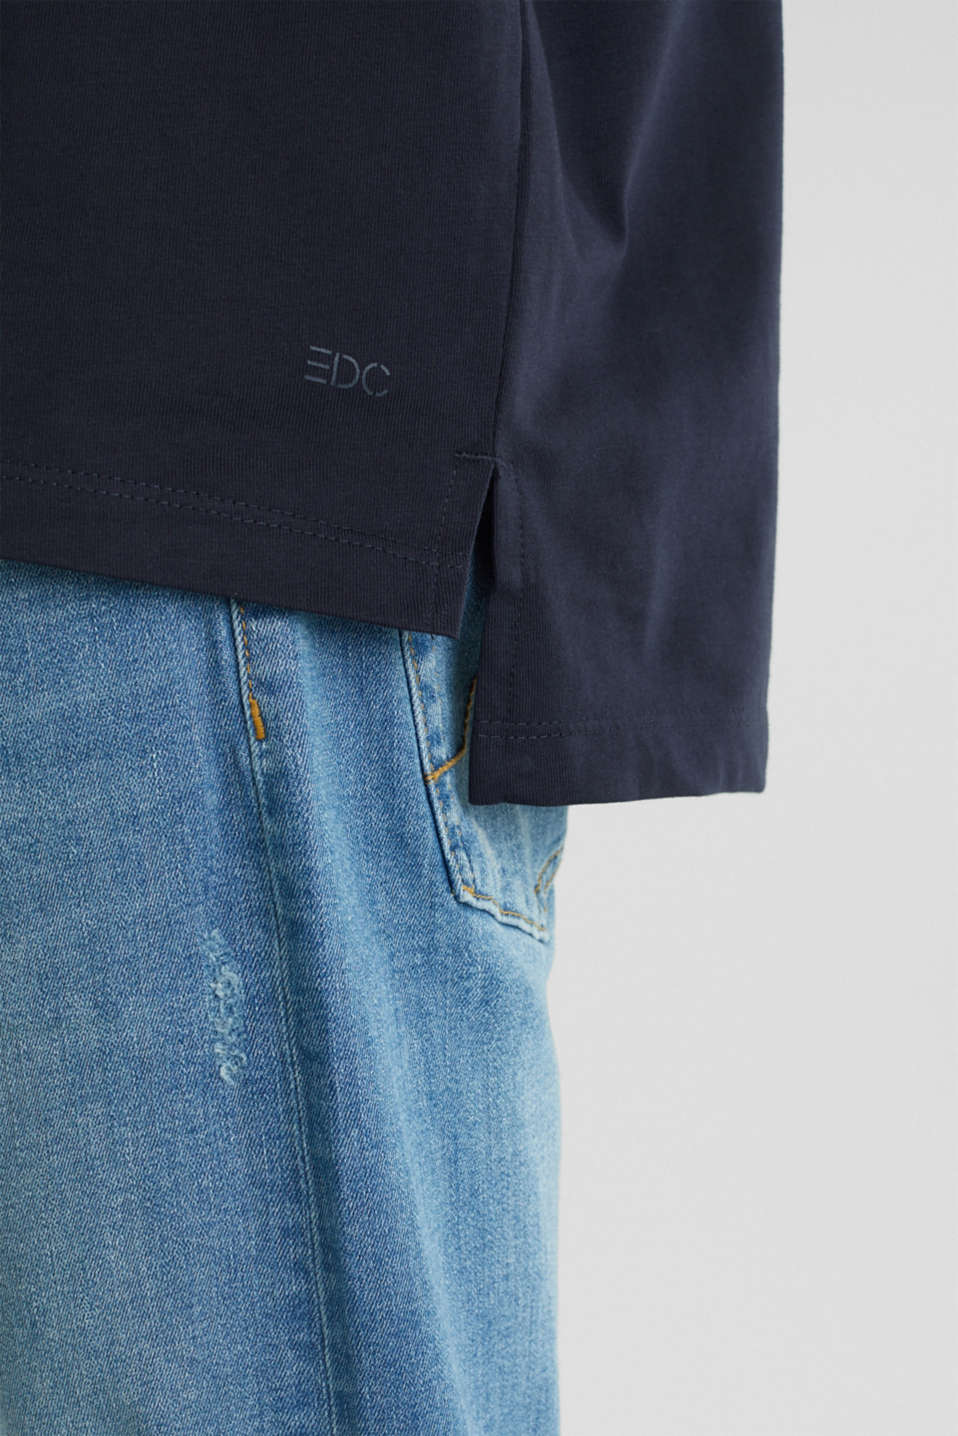 Oversized top in cotton jersey, NAVY, detail image number 5